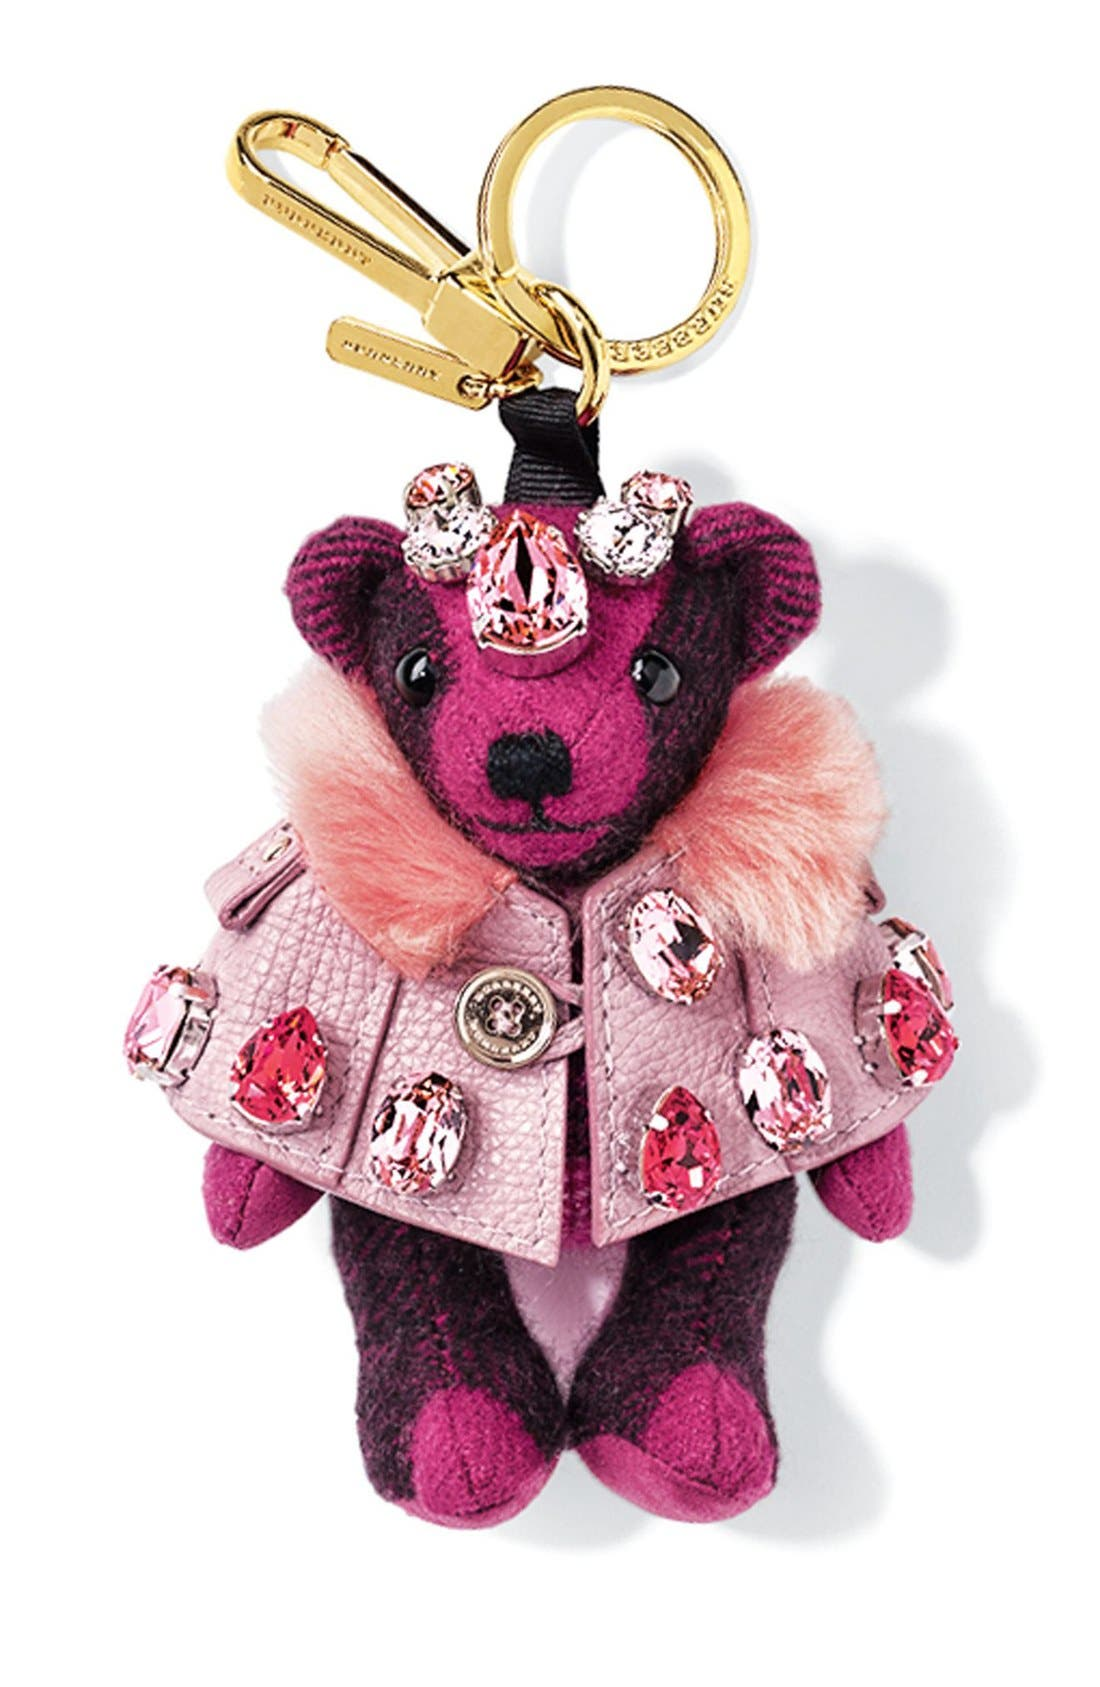 Burberry Thomas Bear Bag Charm with Cape & Crystals